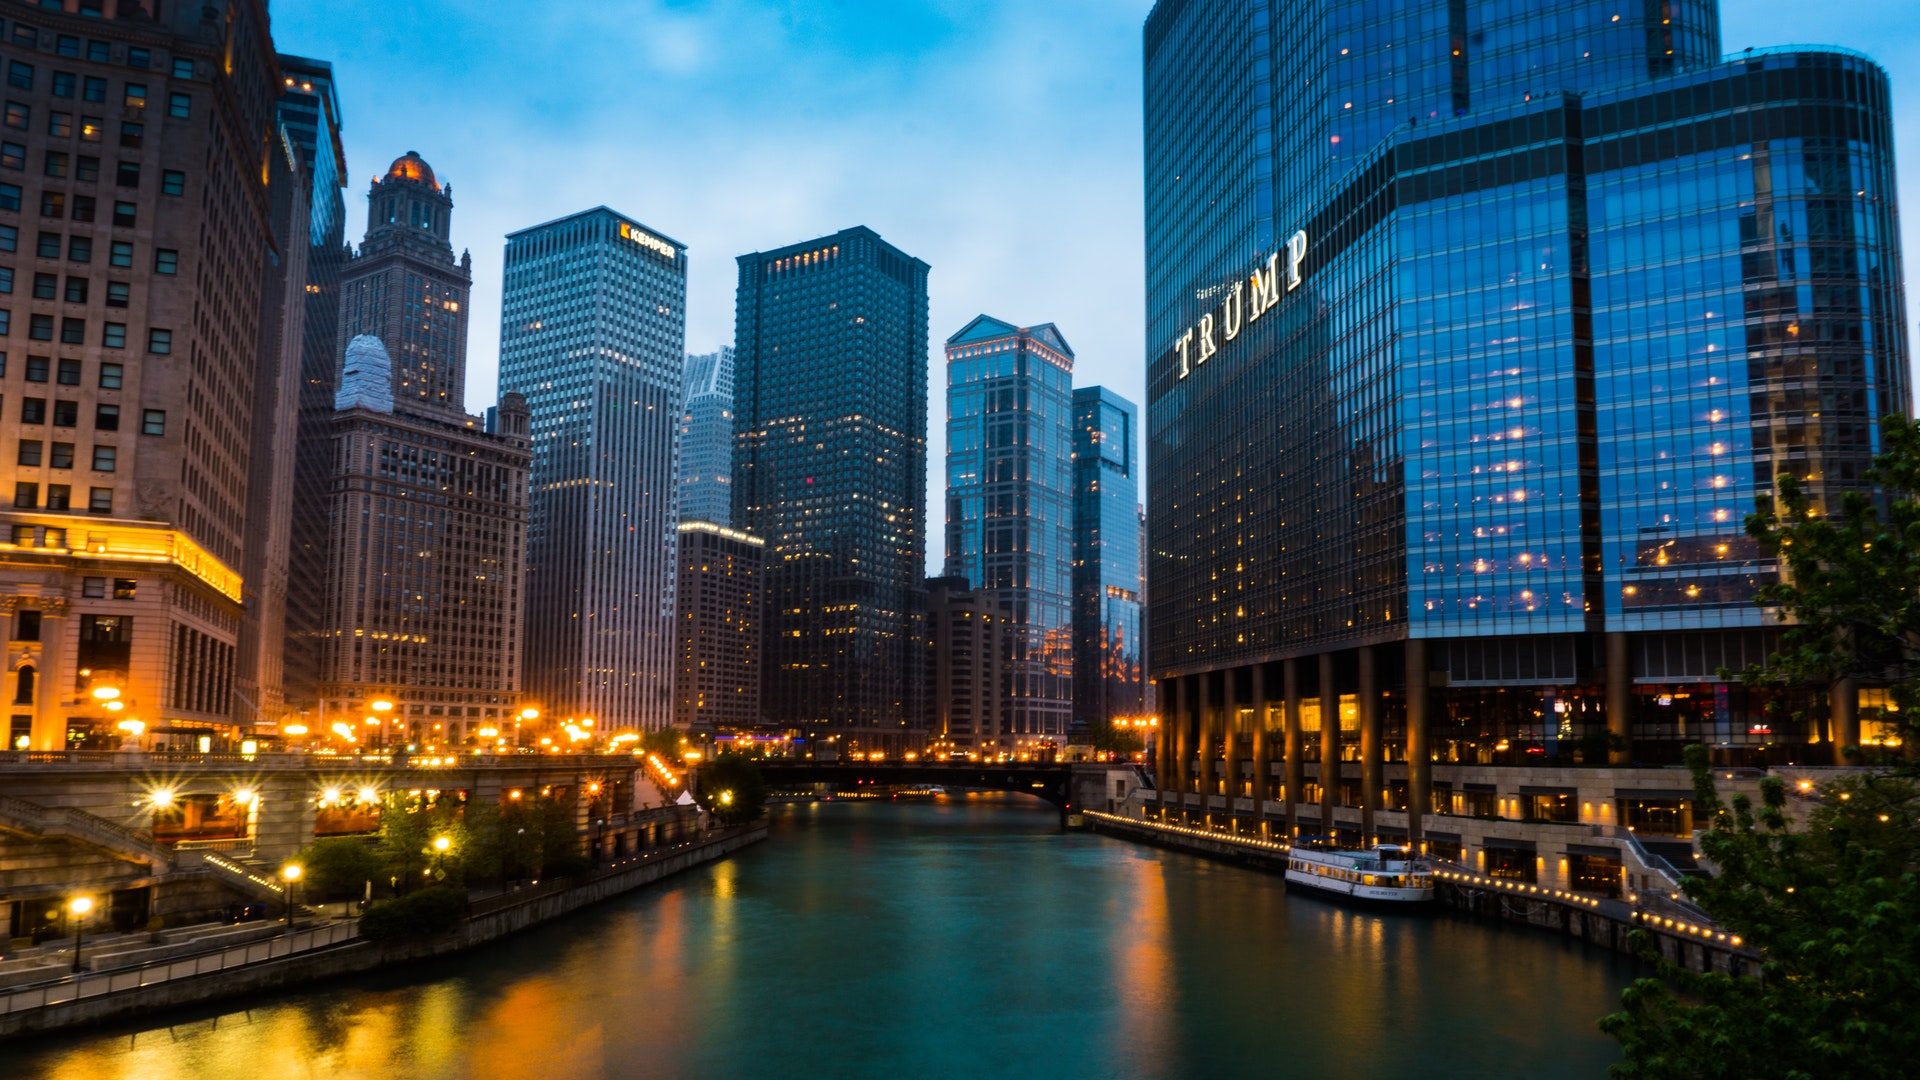 Chicago city, dating in Chicago